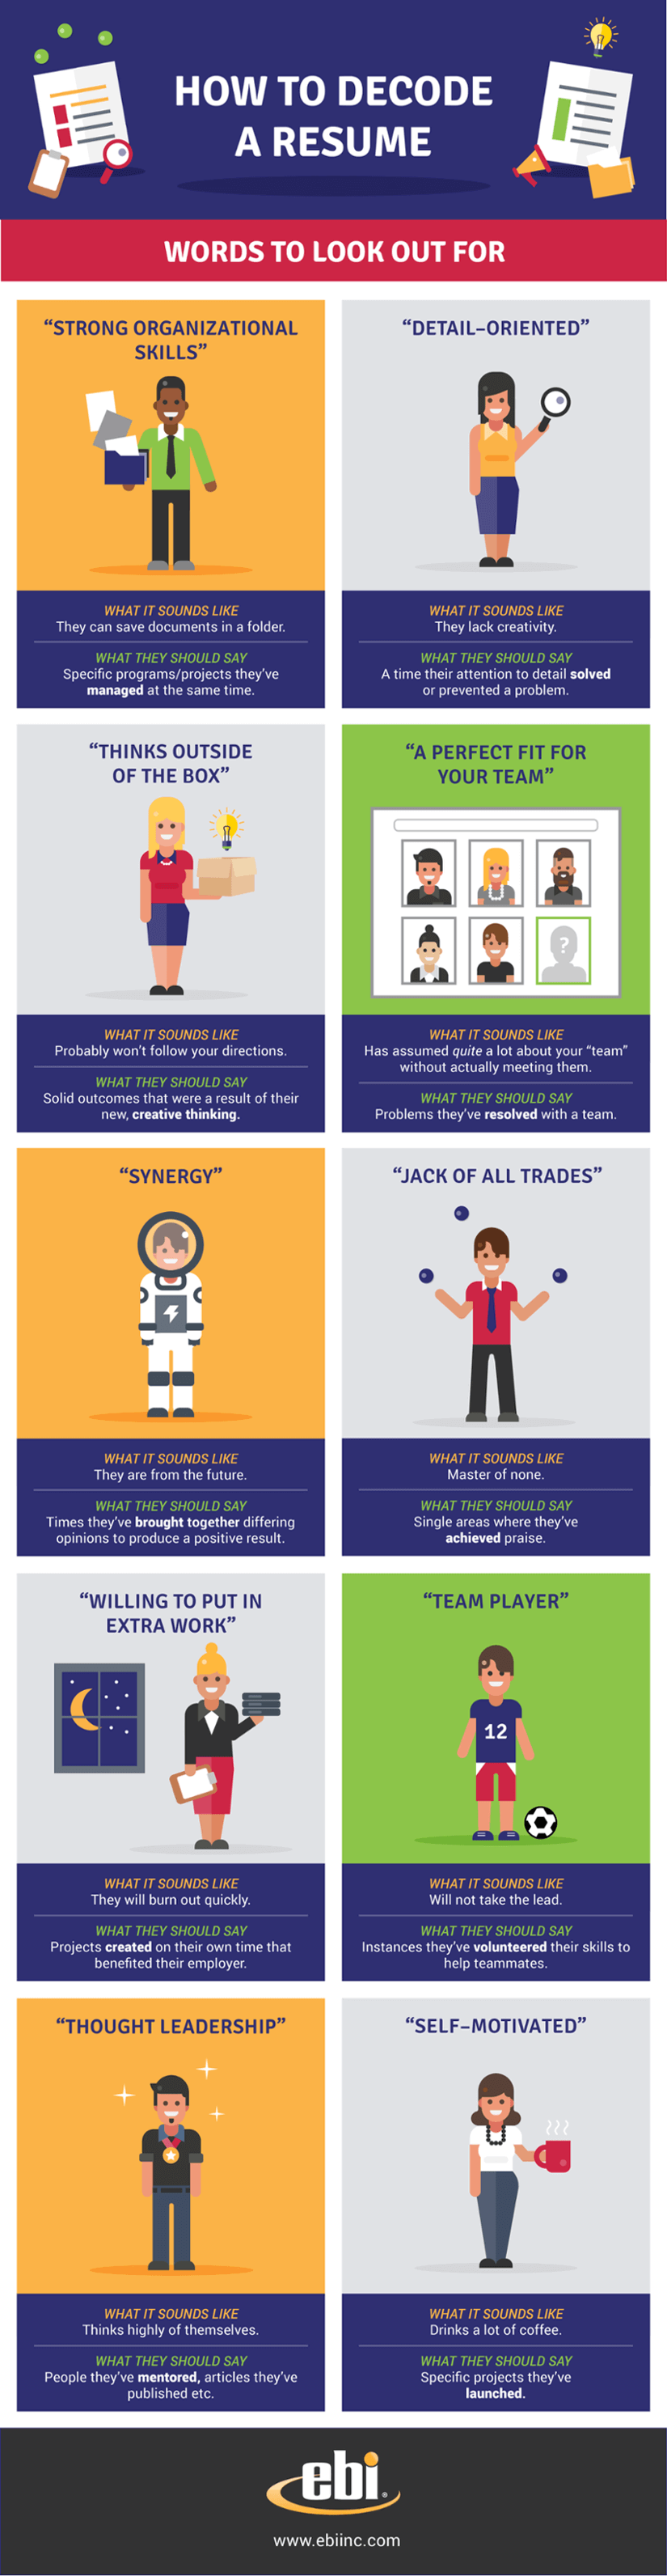 How to Decode a Resume- Infographic